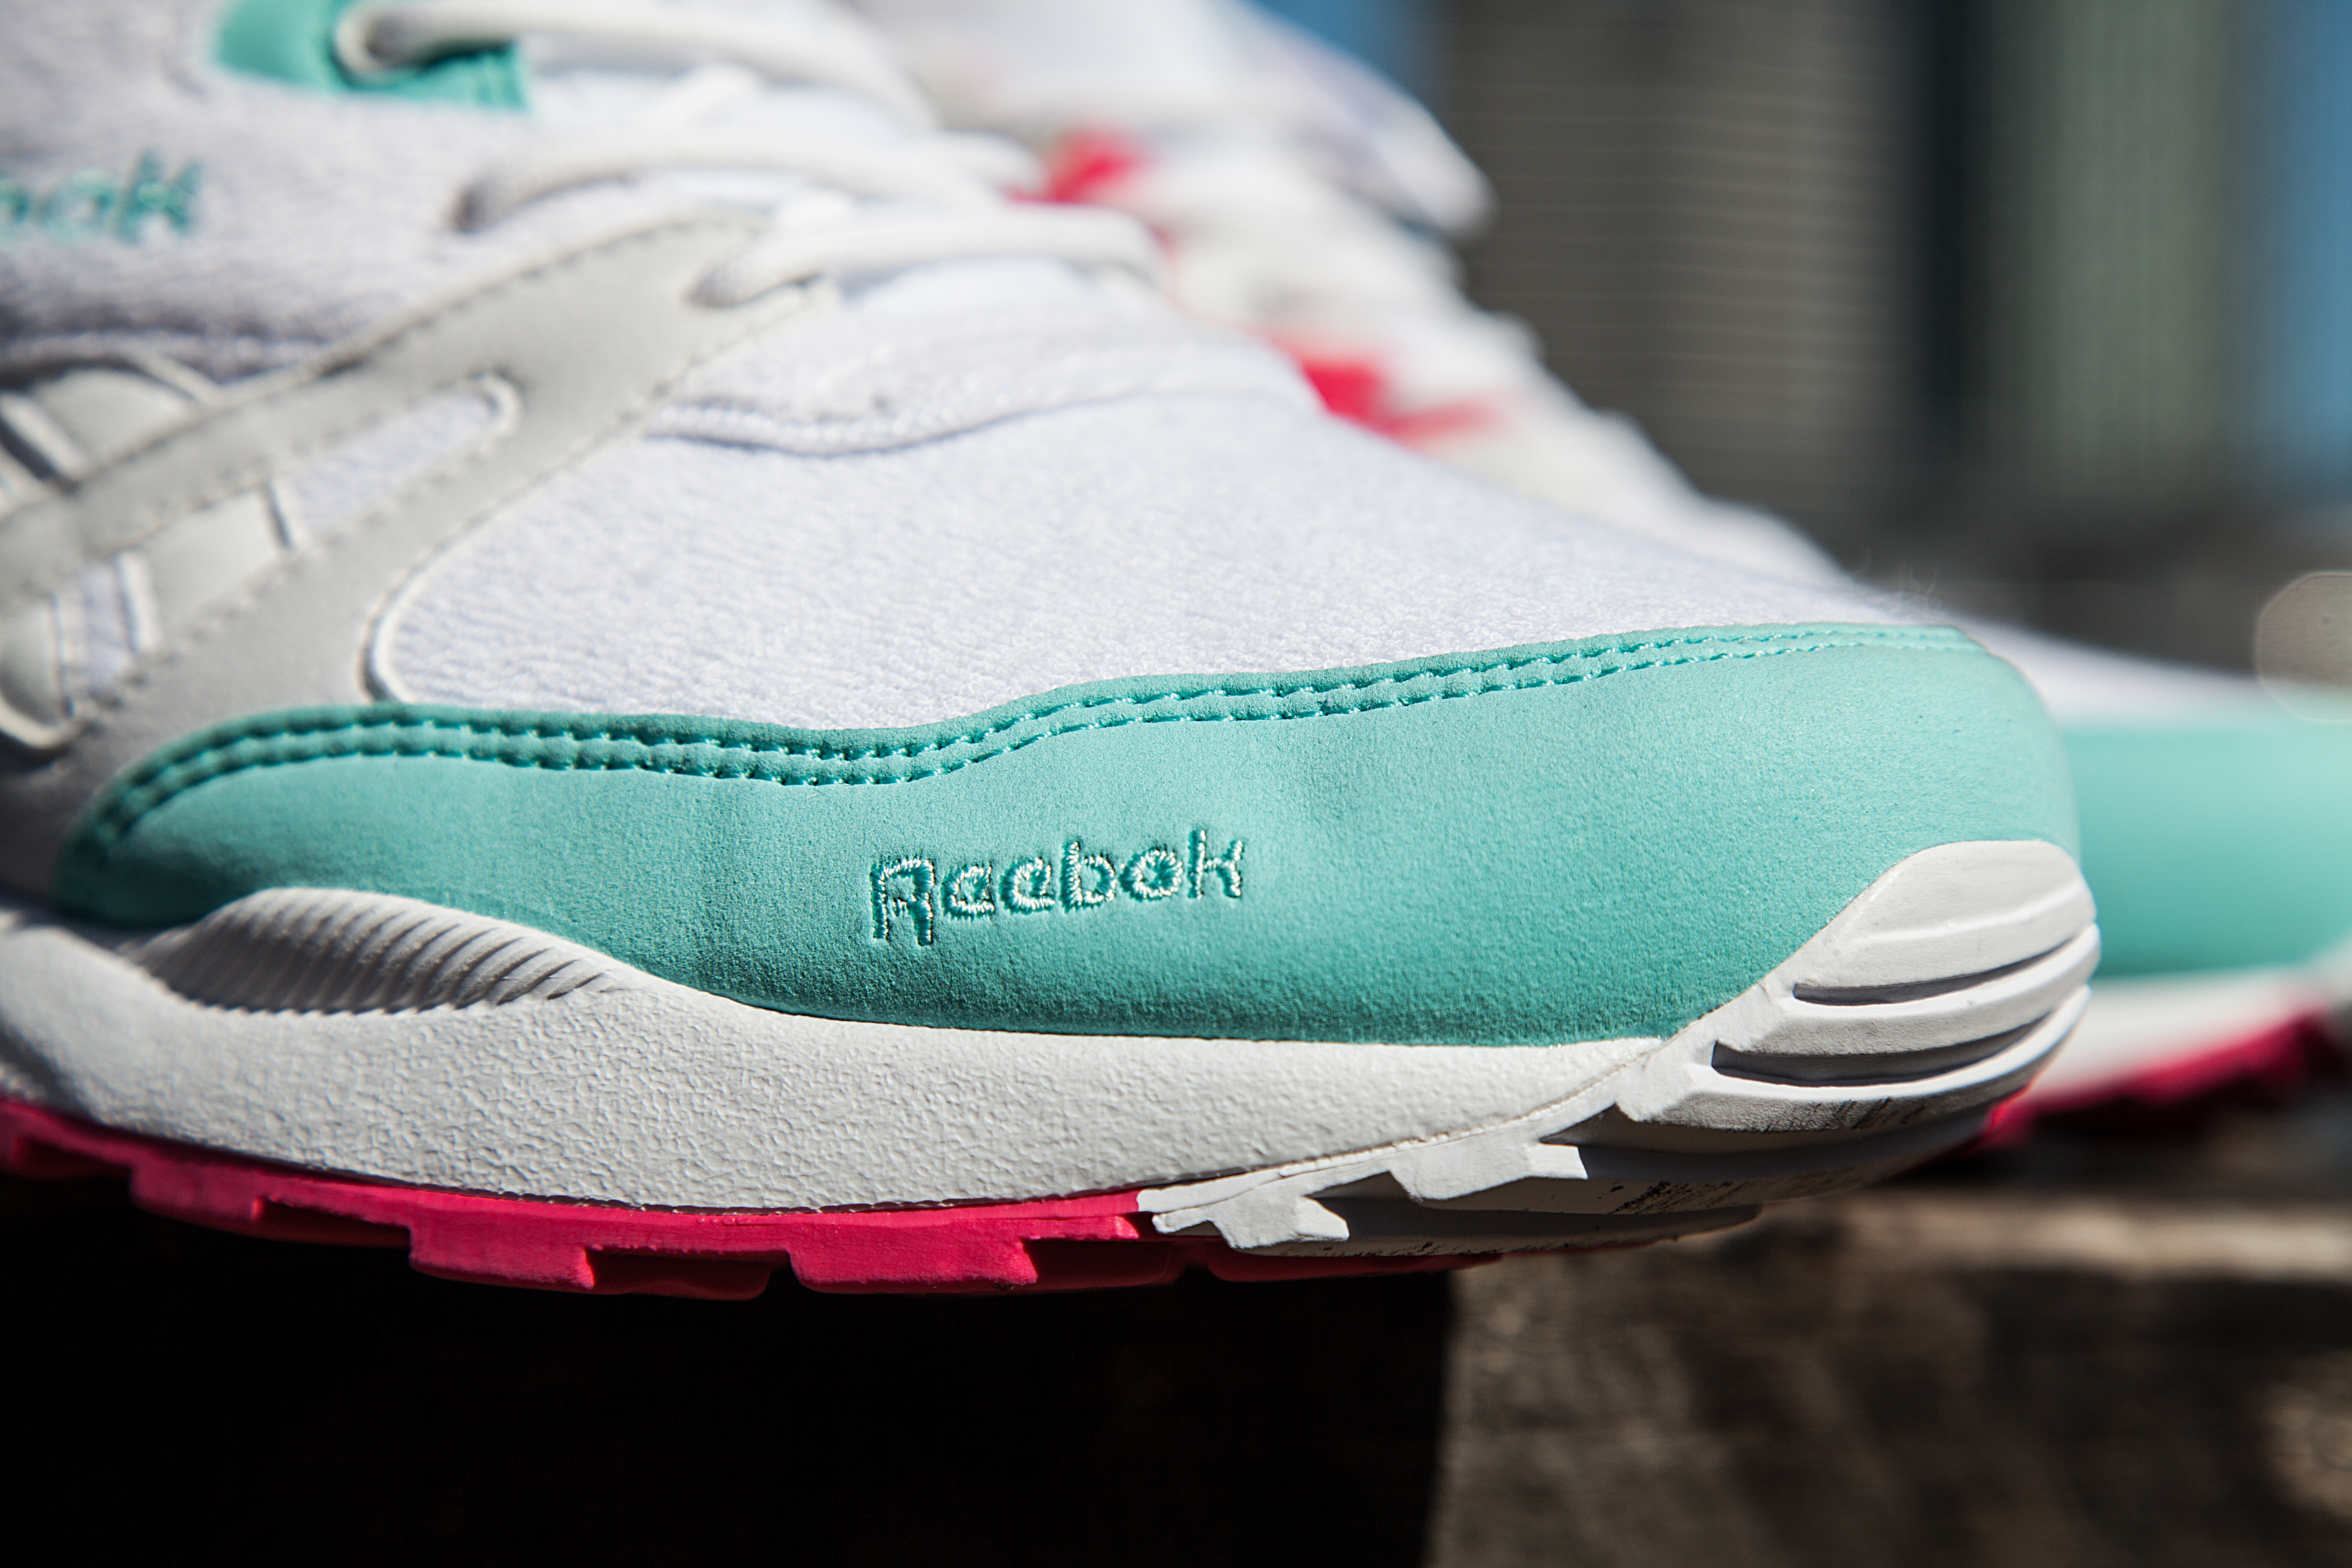 95a84f06cd6 ... 25th Anniversary Ventilator Hotstepper . Reebok teamed up with another  big player in the european sneakergame – Londons Foot Patrol! ...